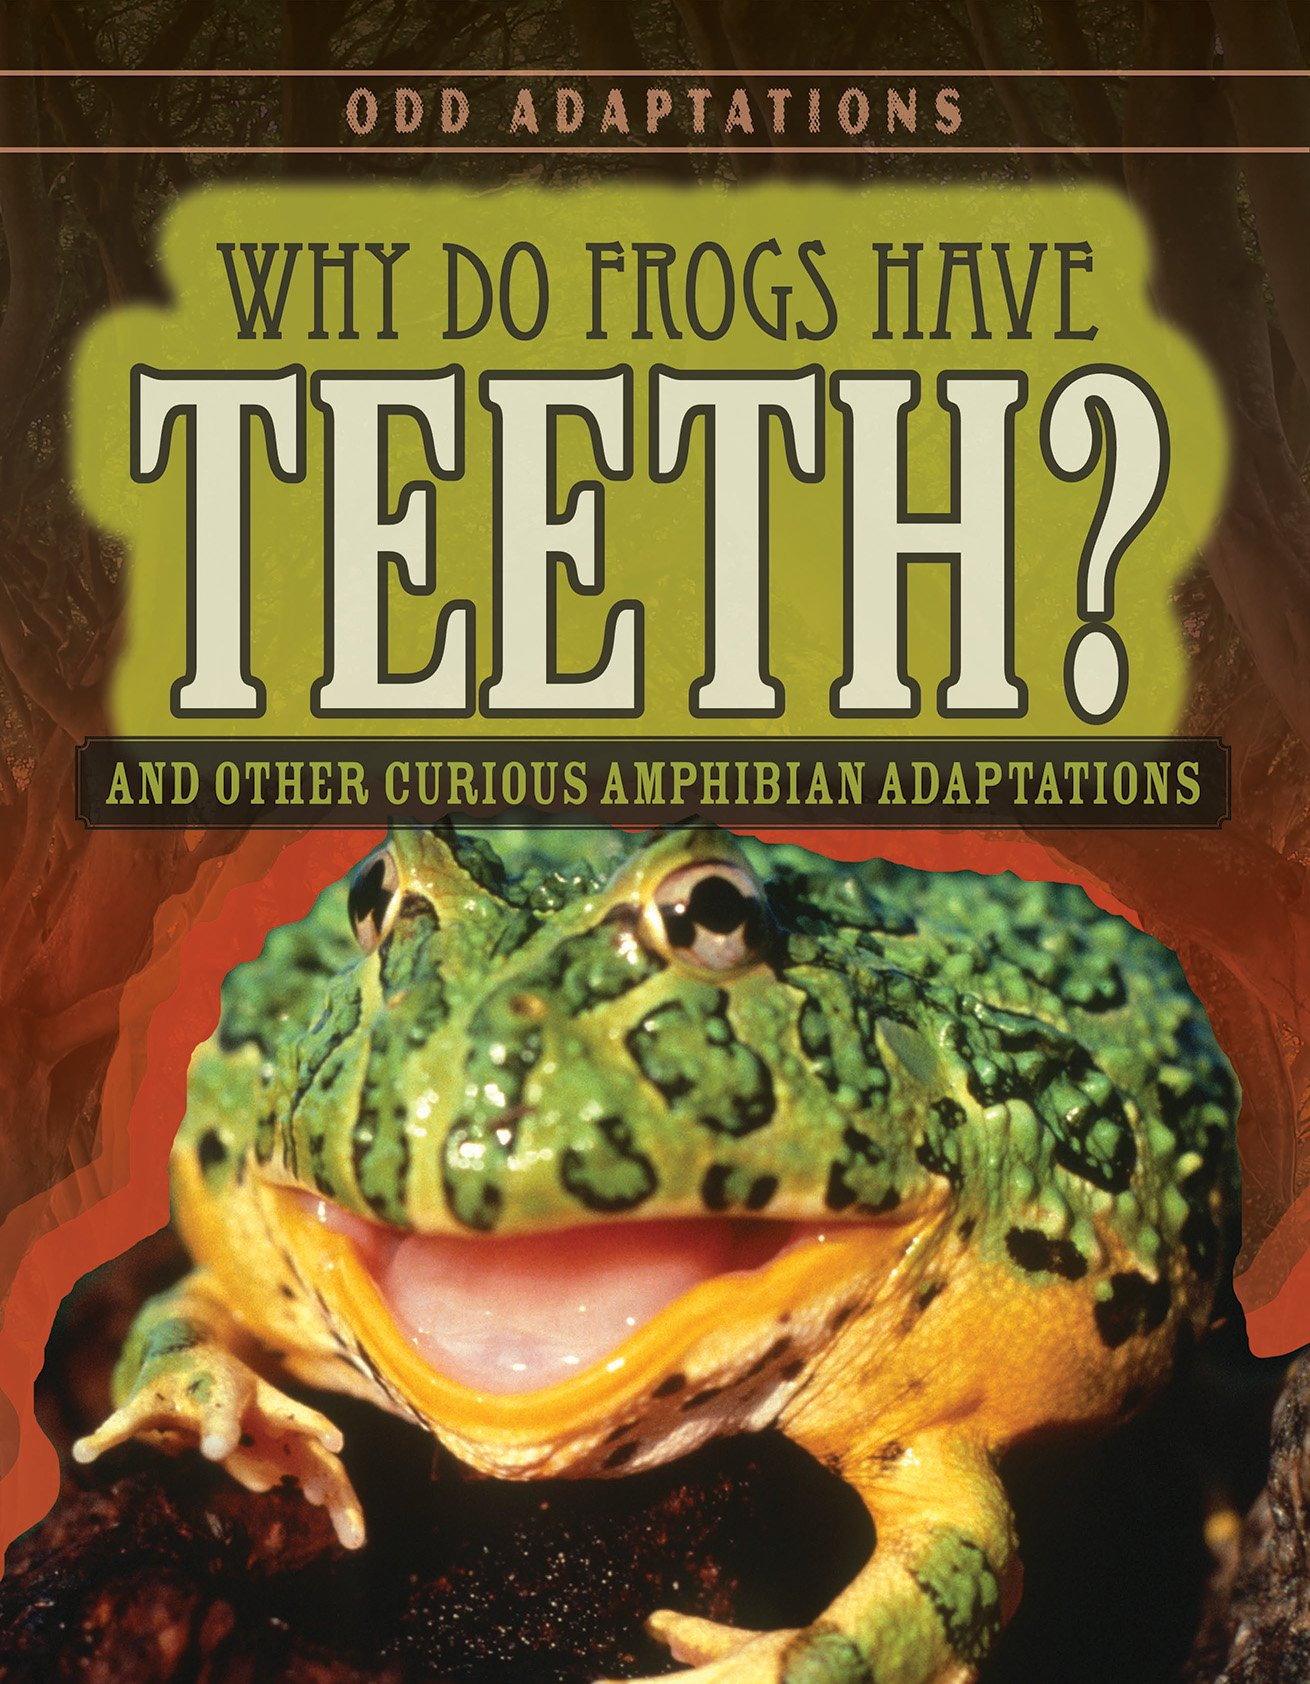 Download Why Do Frogs Have Teeth?: And Other Curious Amphibian Adaptations (Odd Adaptations) PDF